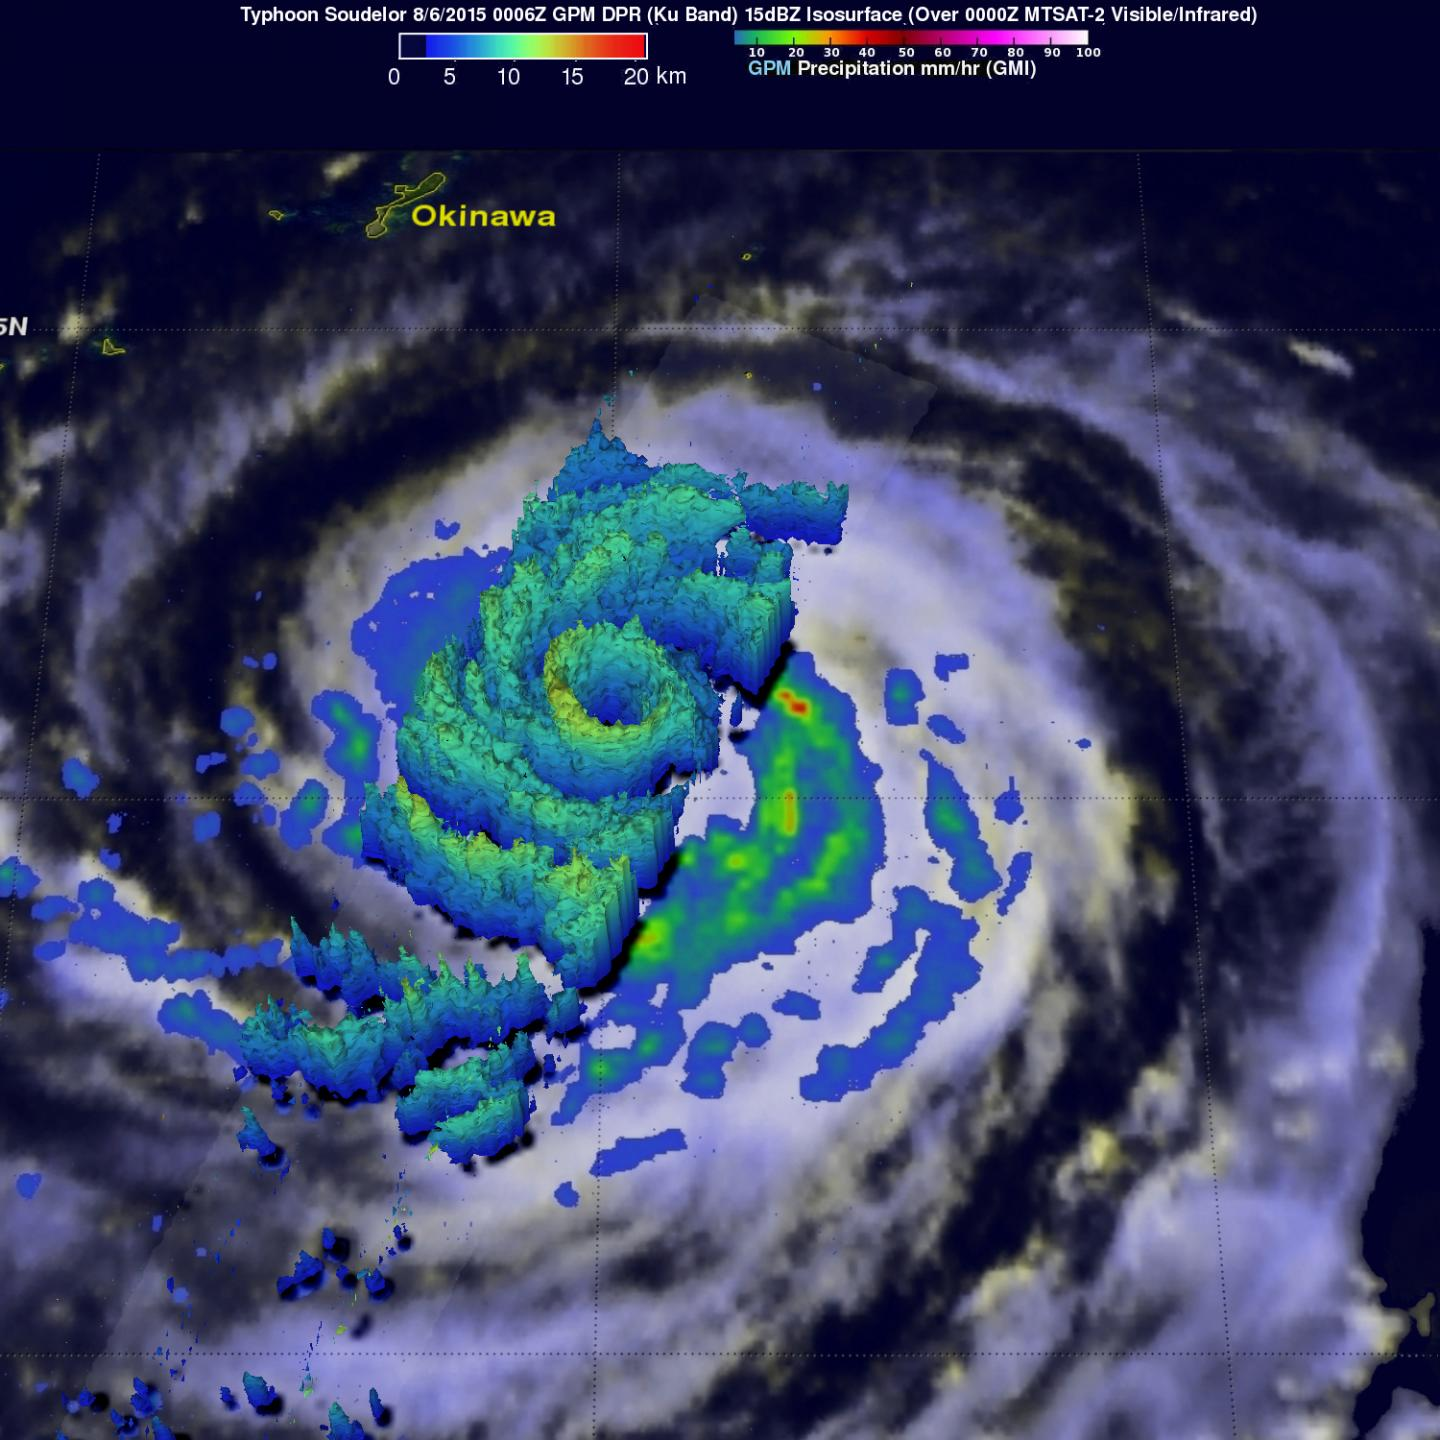 GPM Image of Soudelor